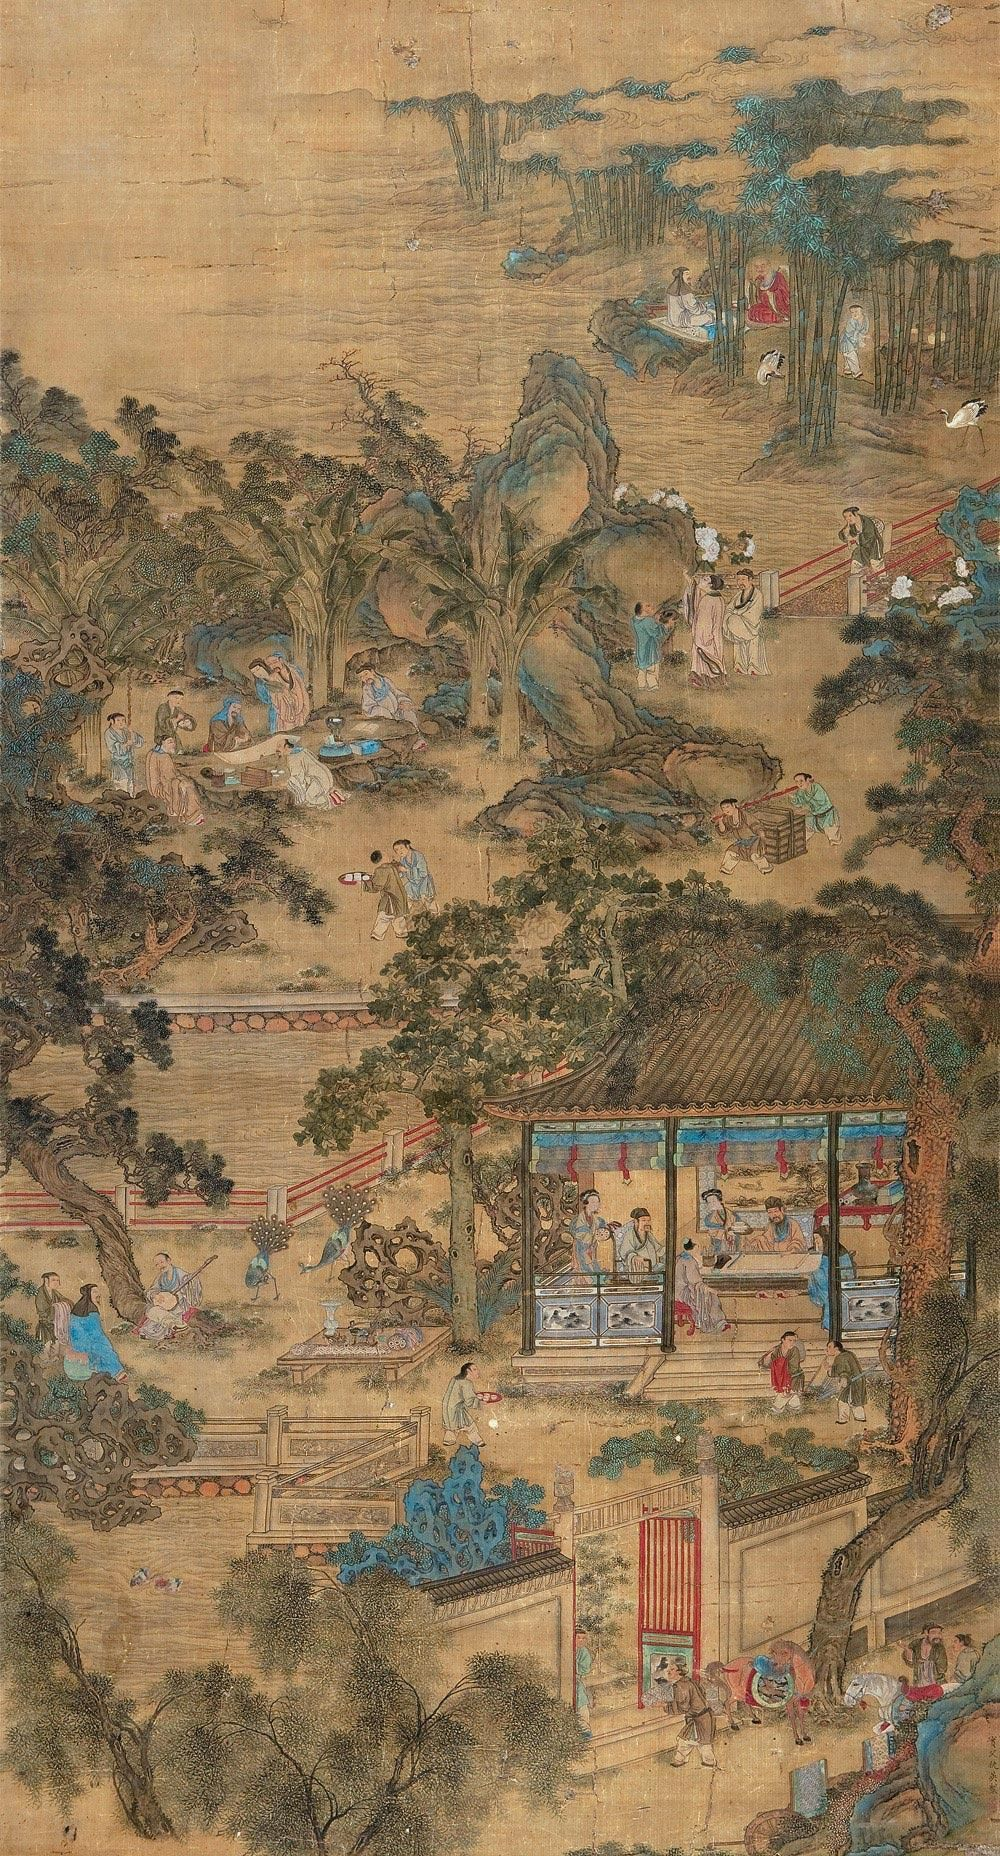 A party in a residential garden, ink painting by Qiu Ying (仇英 1494 ...